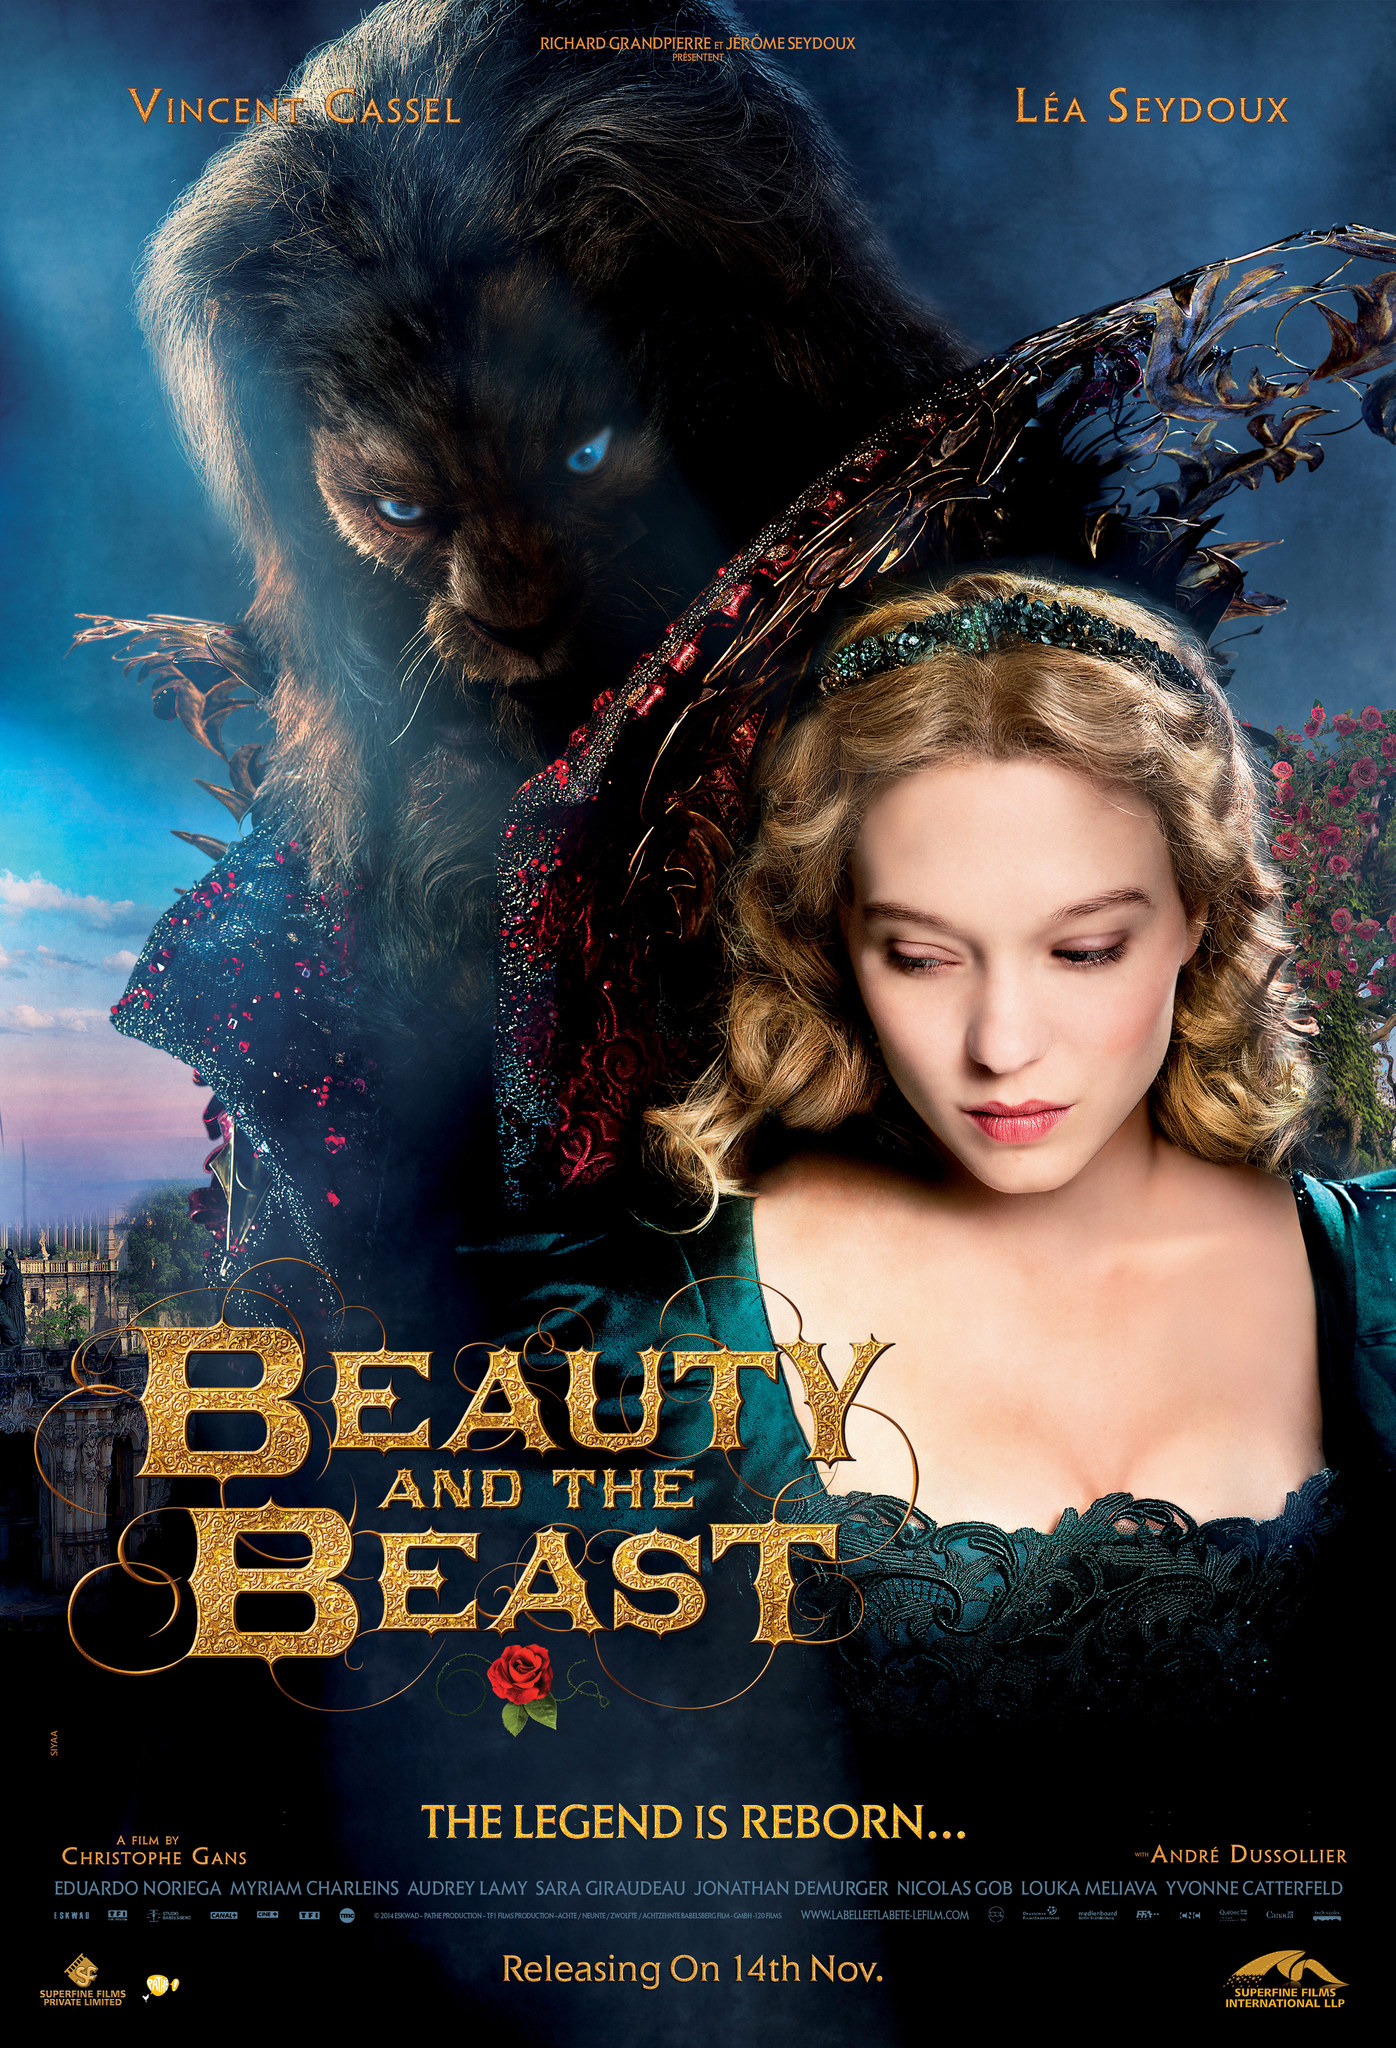 When was beauty and the beast released